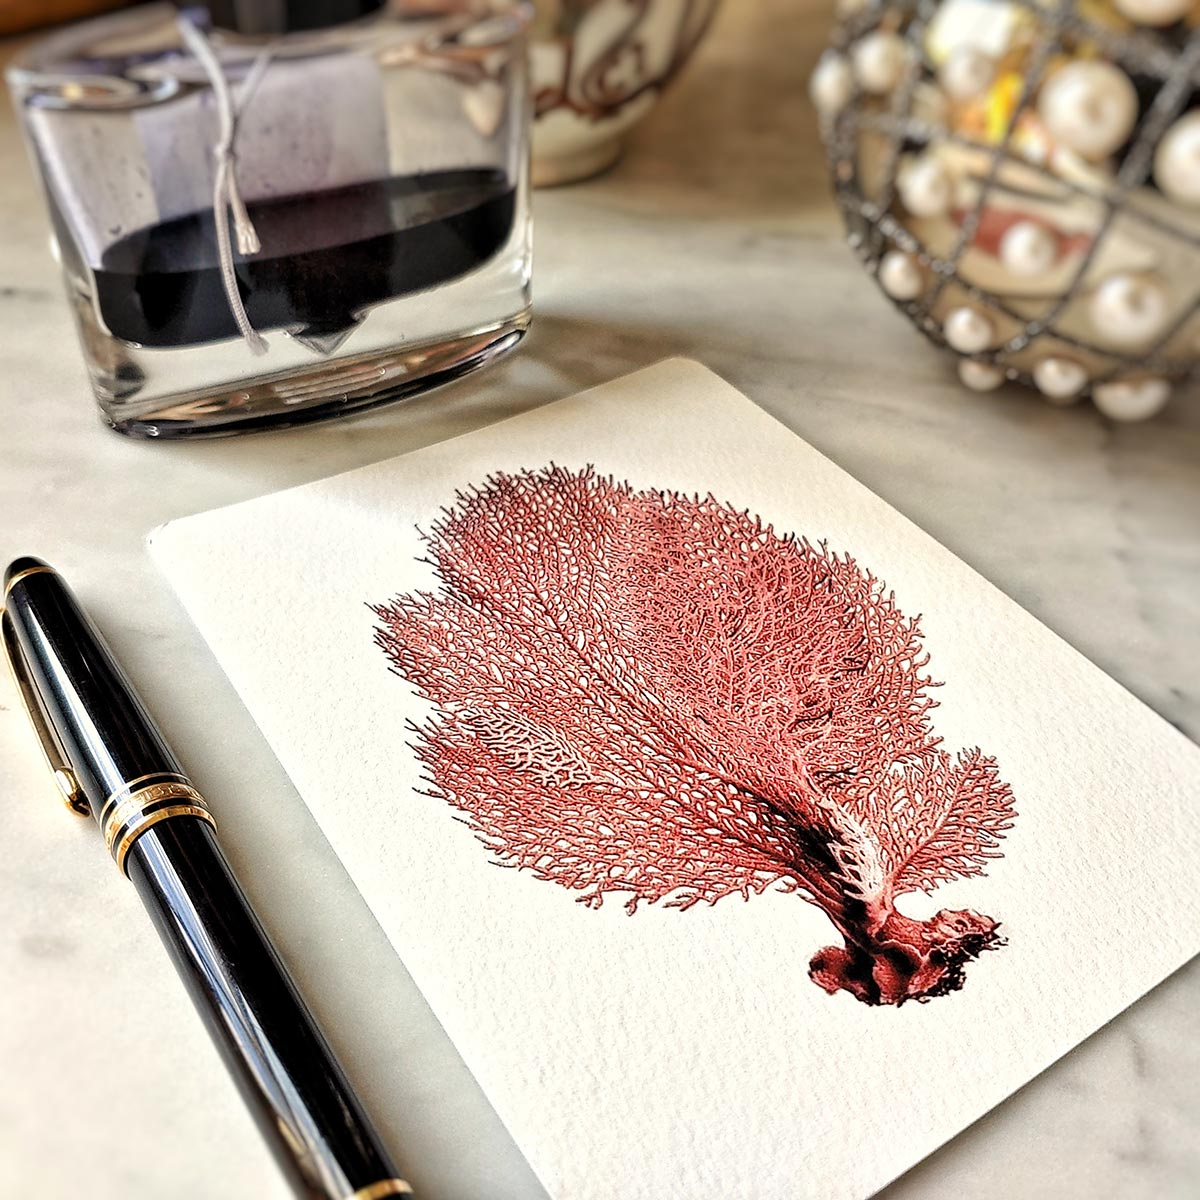 The Punctilious Mr. P's 'Red Seaweed & Coral' note card pack showing red sea fan